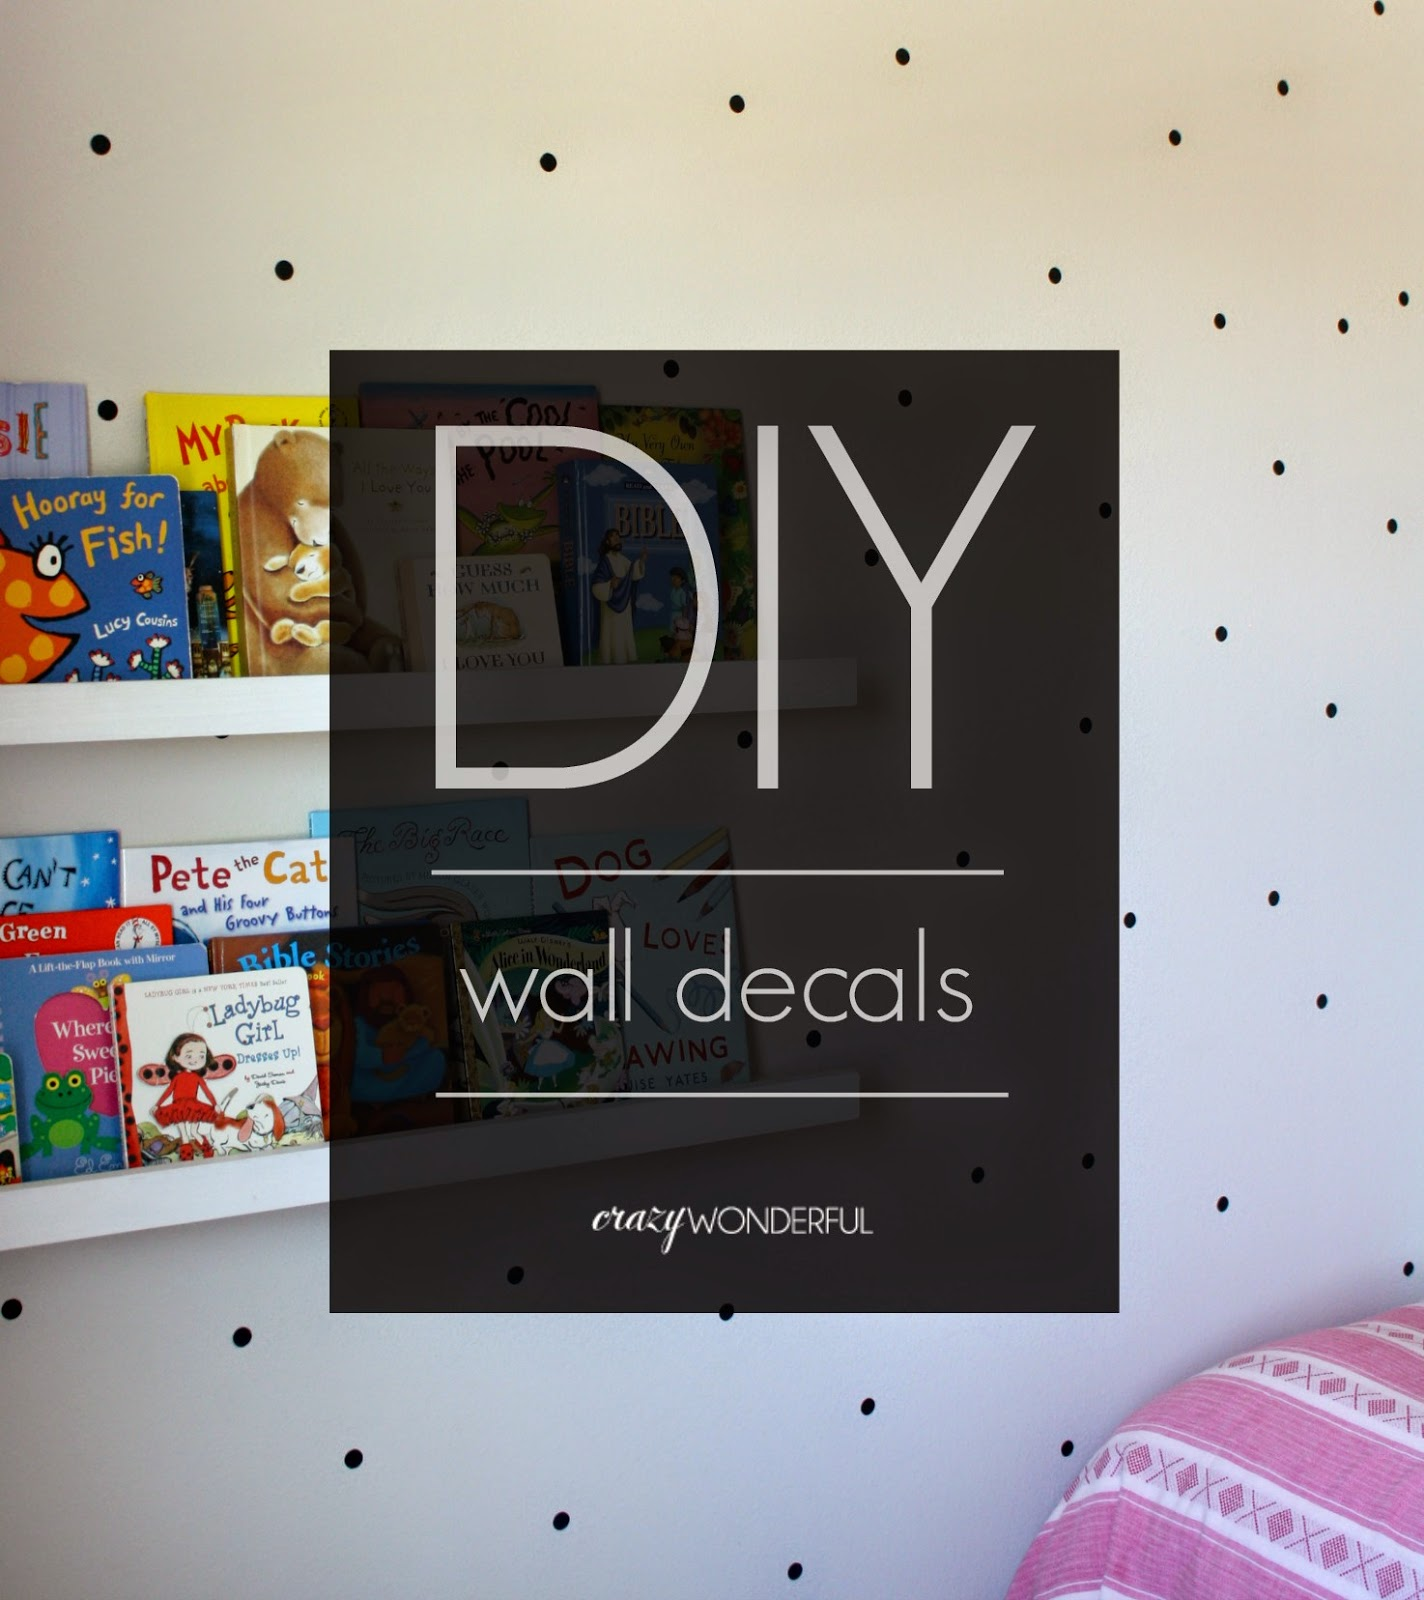 I had an itch to get it done, and I didn't want to wait for an order to come in, so I DIY'd me some polka dot wall decals!